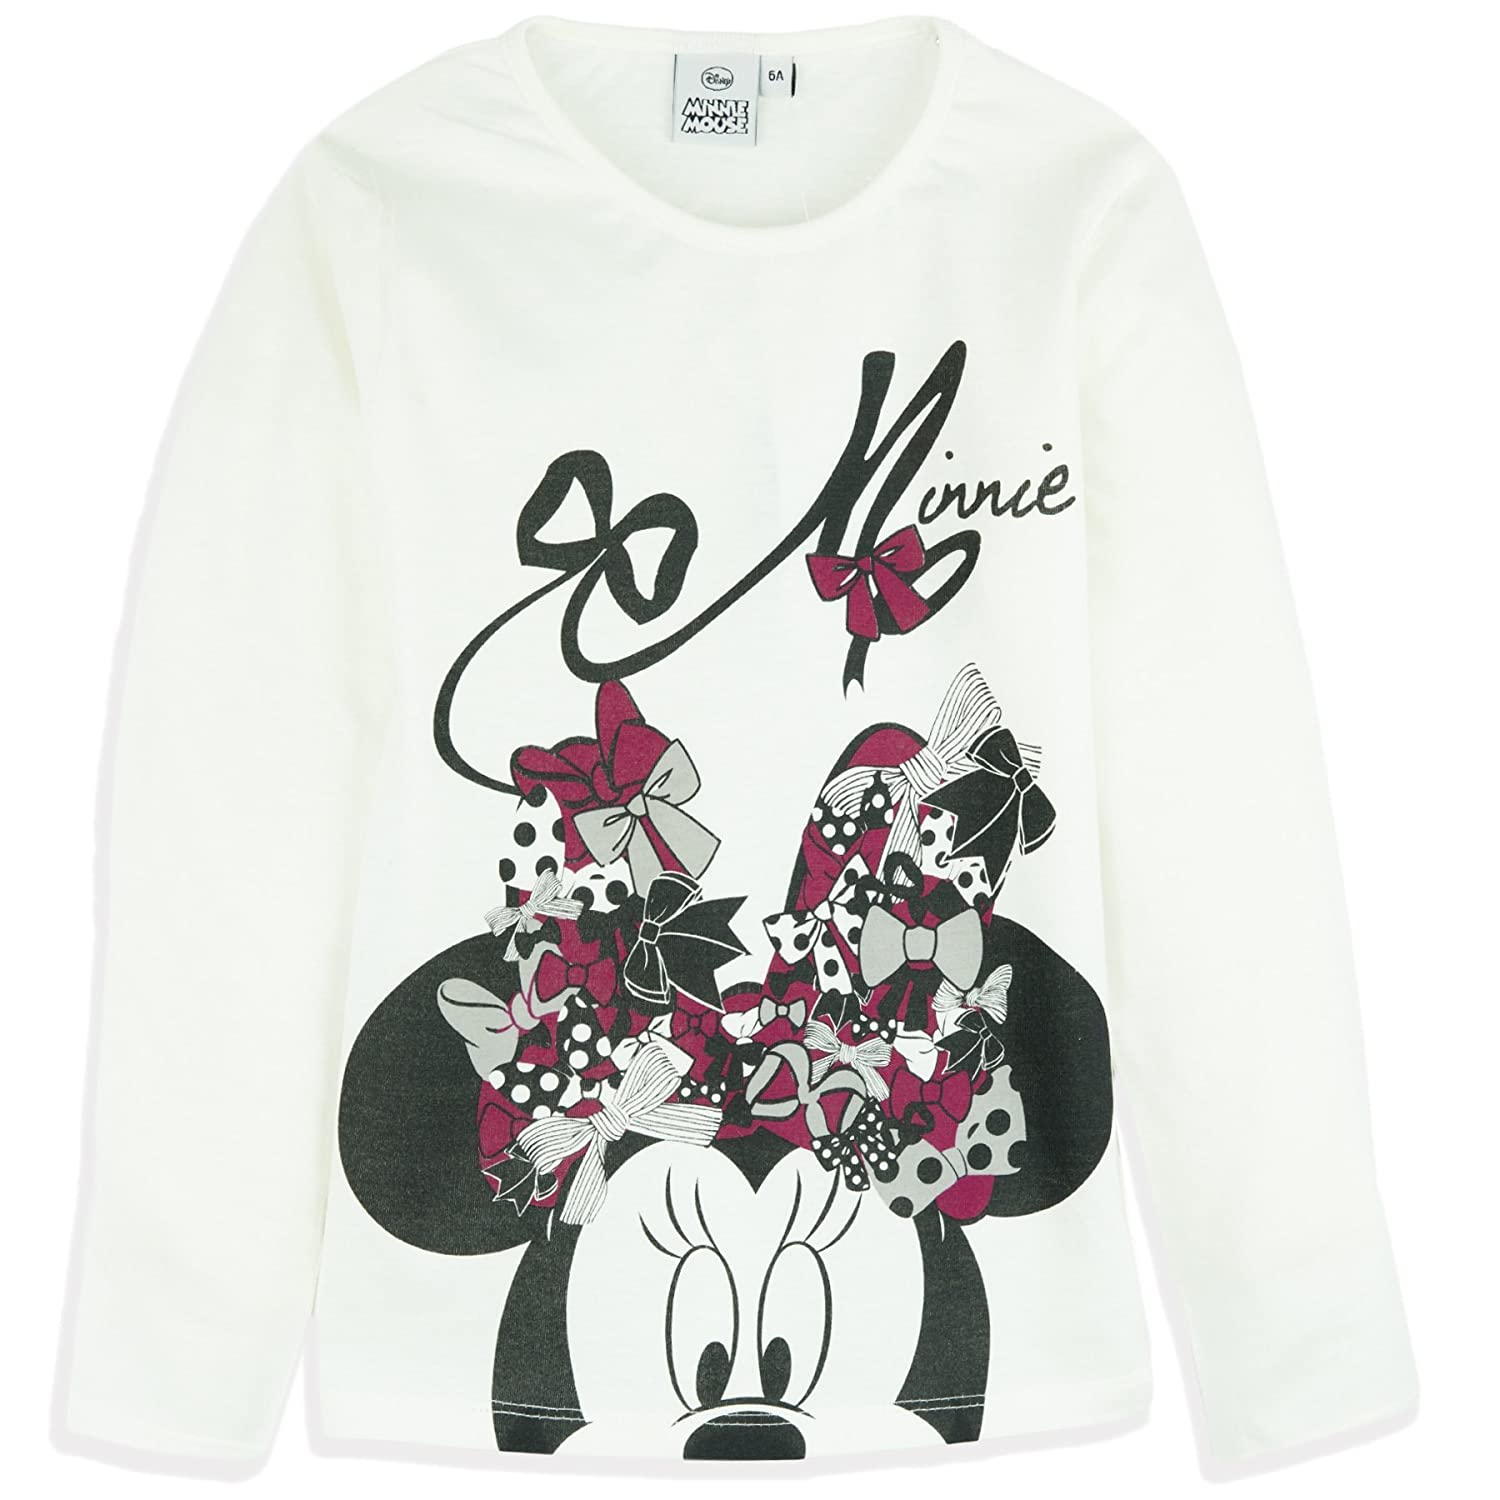 Disney Minnie Mouse Official Licensed Long Sleeve Top T-Shirt 100% Cotton 2-8 Years - New 2018/19